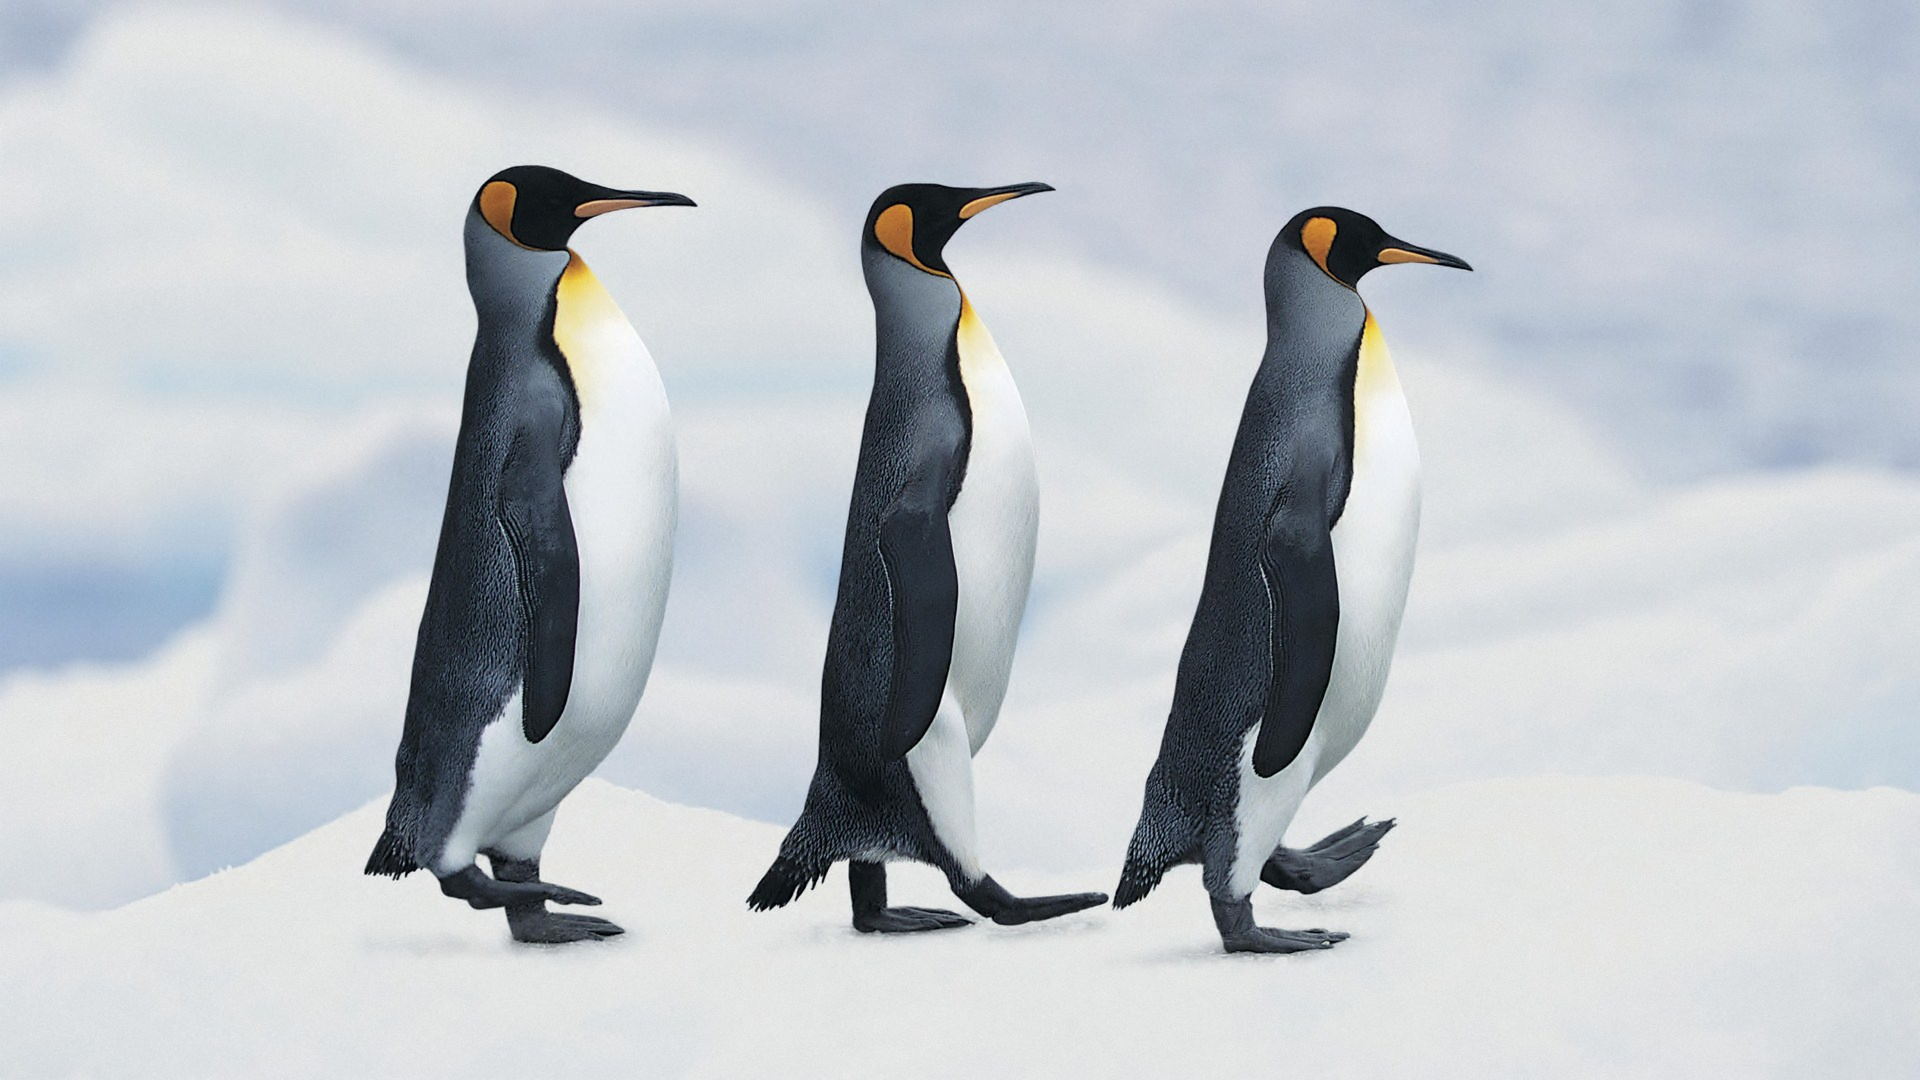 Penguin HD Wallpapers 37 images   Wallpaper Stream 1920x1080